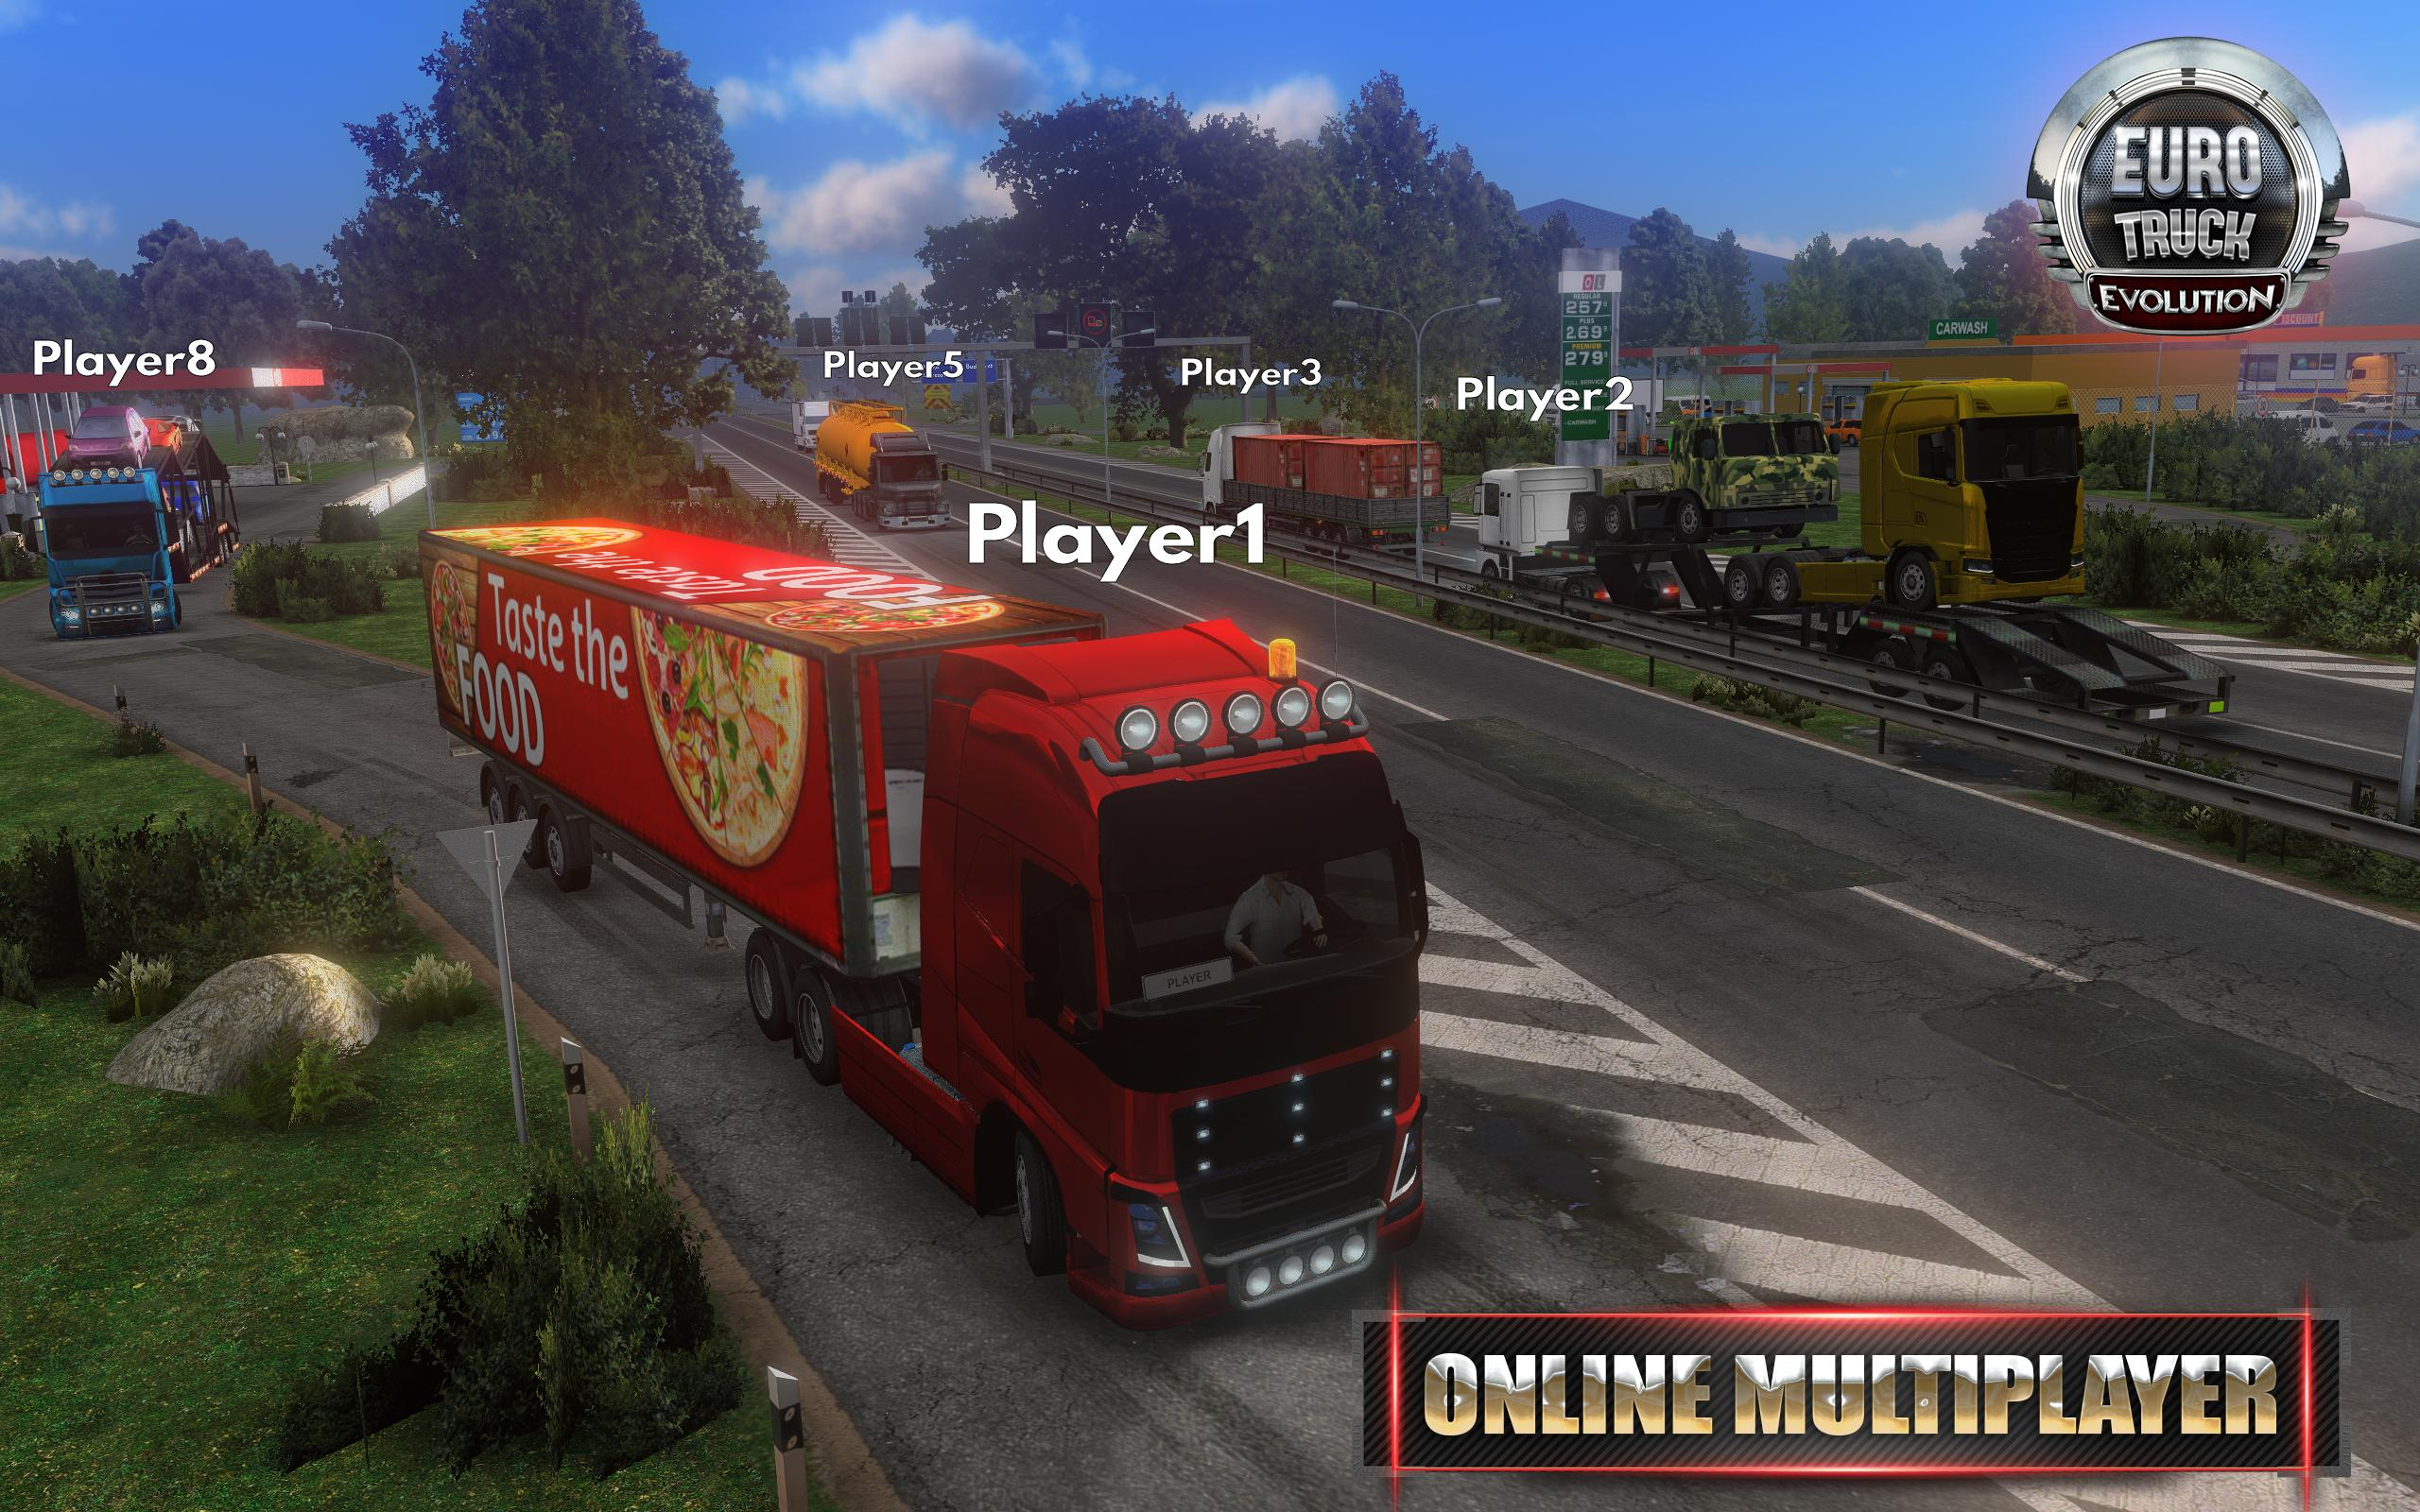 Euro Truck Evolution (Simulator) 3.1 Screenshot 15